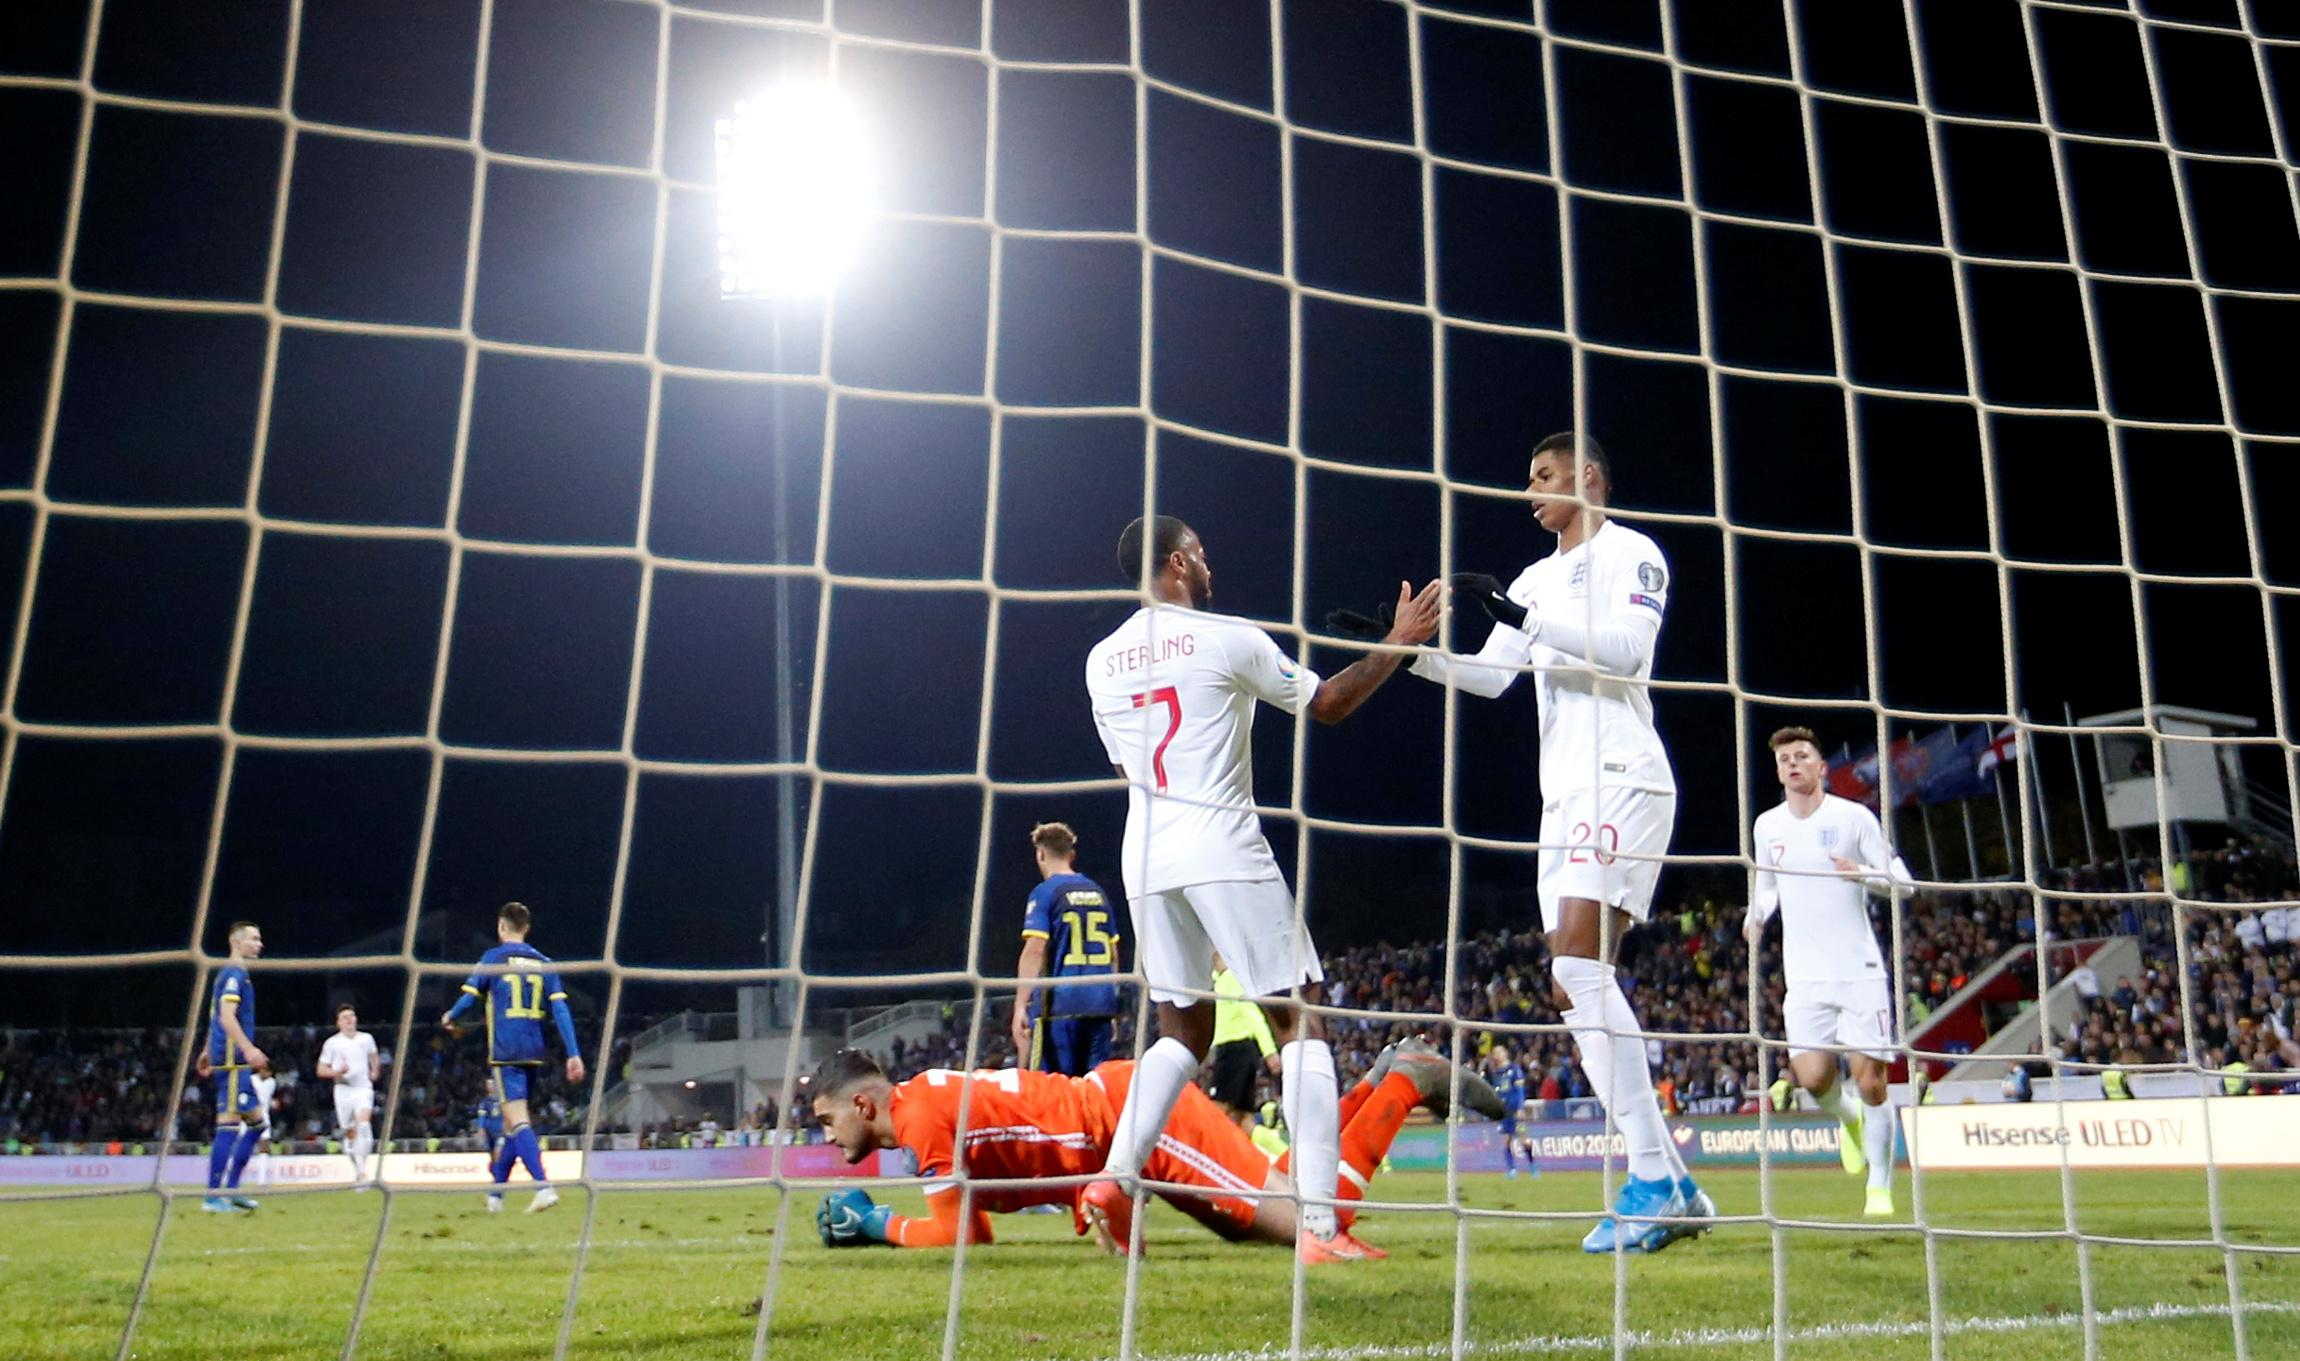 Goals galore but England still need defensive improvements